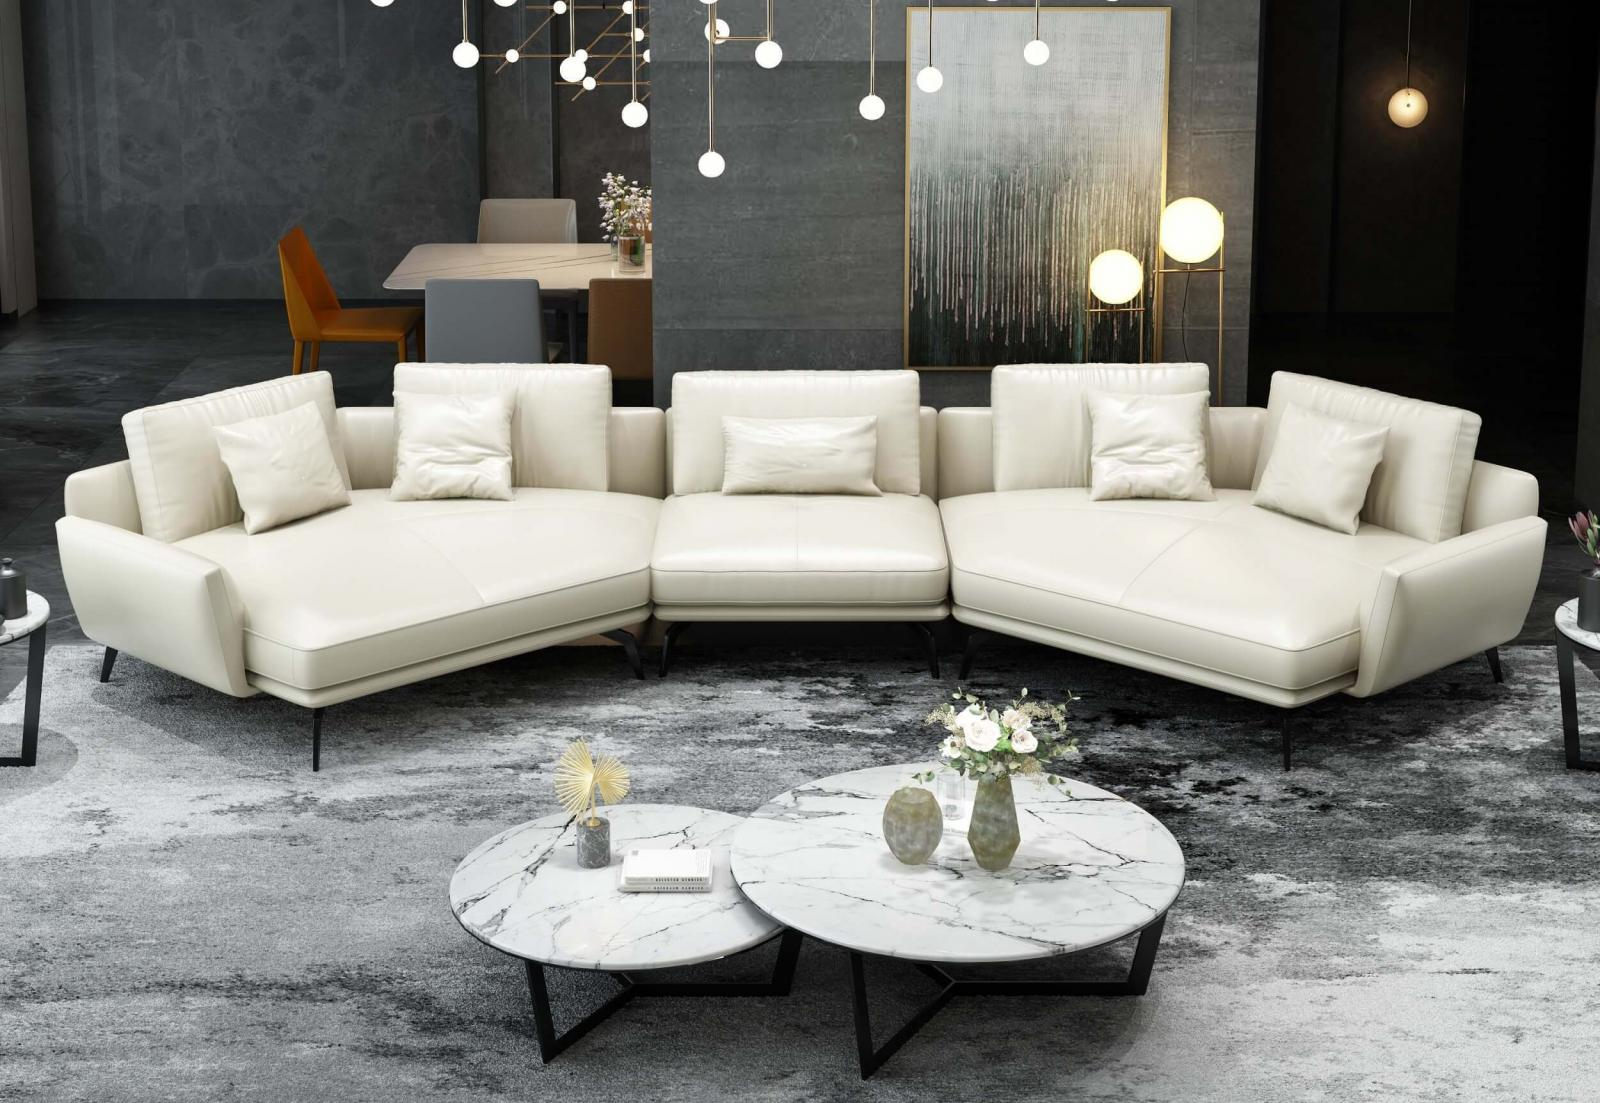 Modern  Vintage White  Off-White Wood  Genuine leather  Solid Hardwood and Italian Leather Sectional Sofa EUROPEAN FURNITURE EF-65556-5S